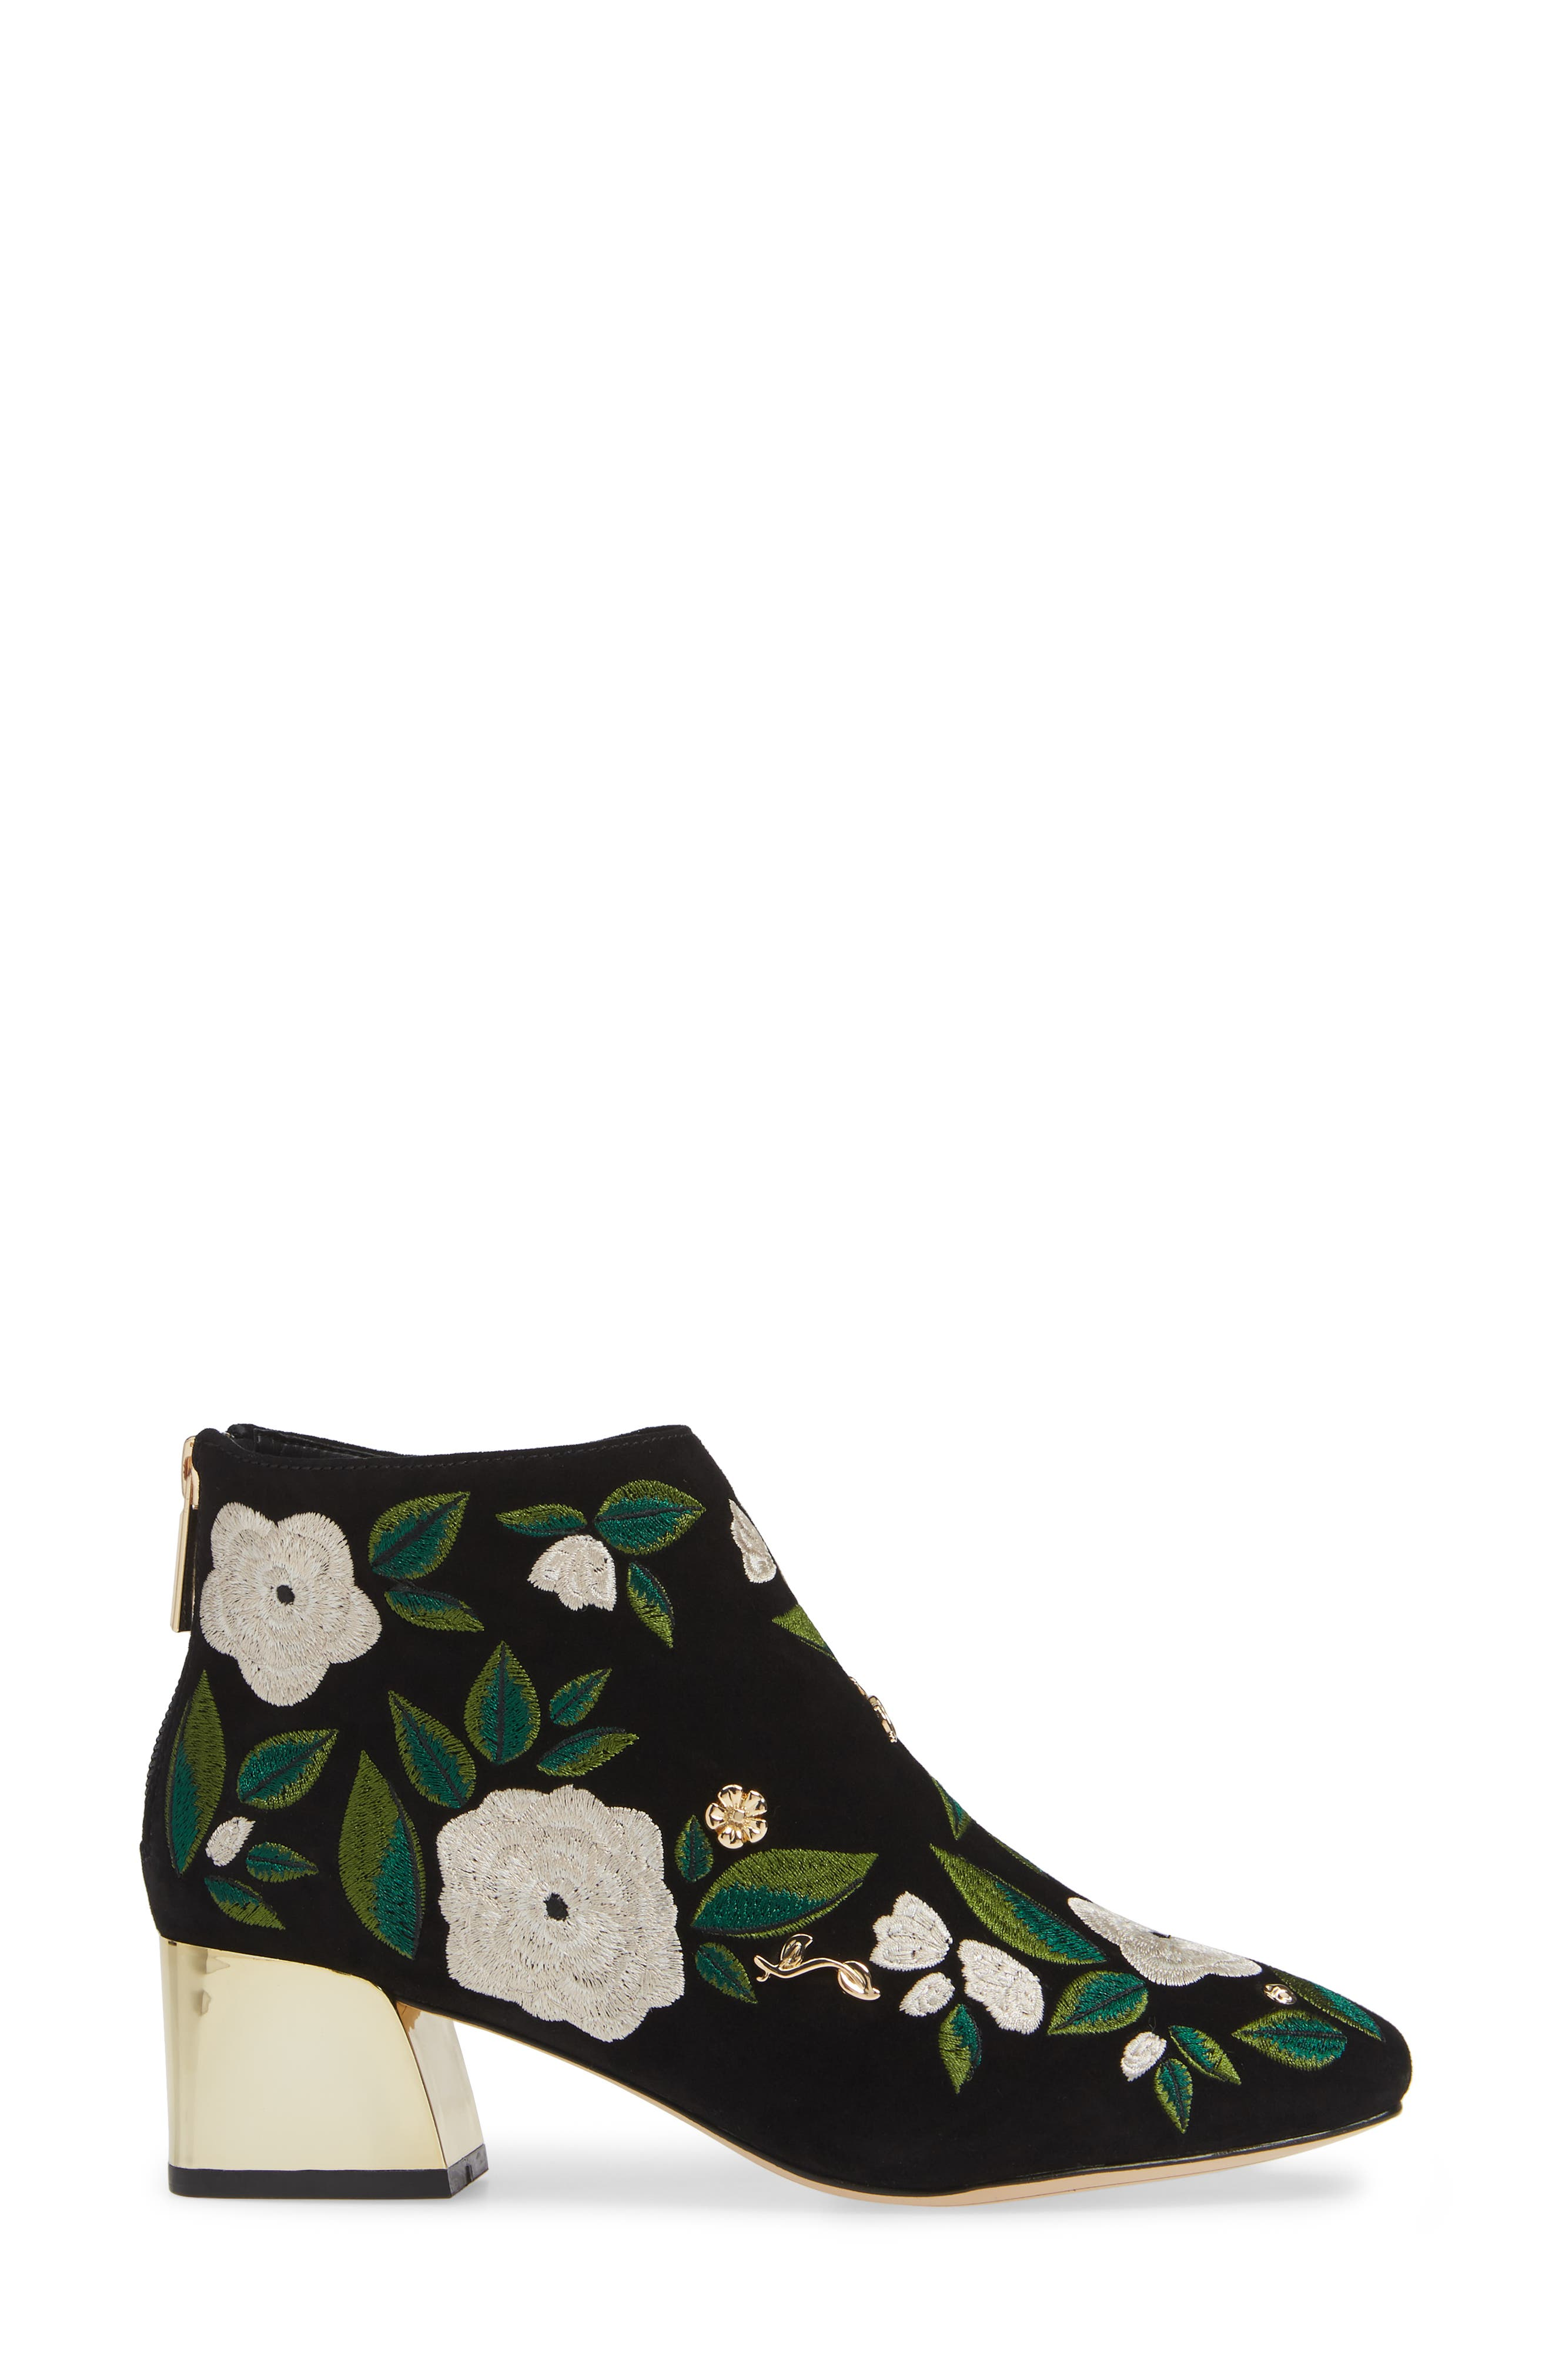 KARL LAGERFELD PARIS,                             Harlow Bootie,                             Alternate thumbnail 3, color,                             002